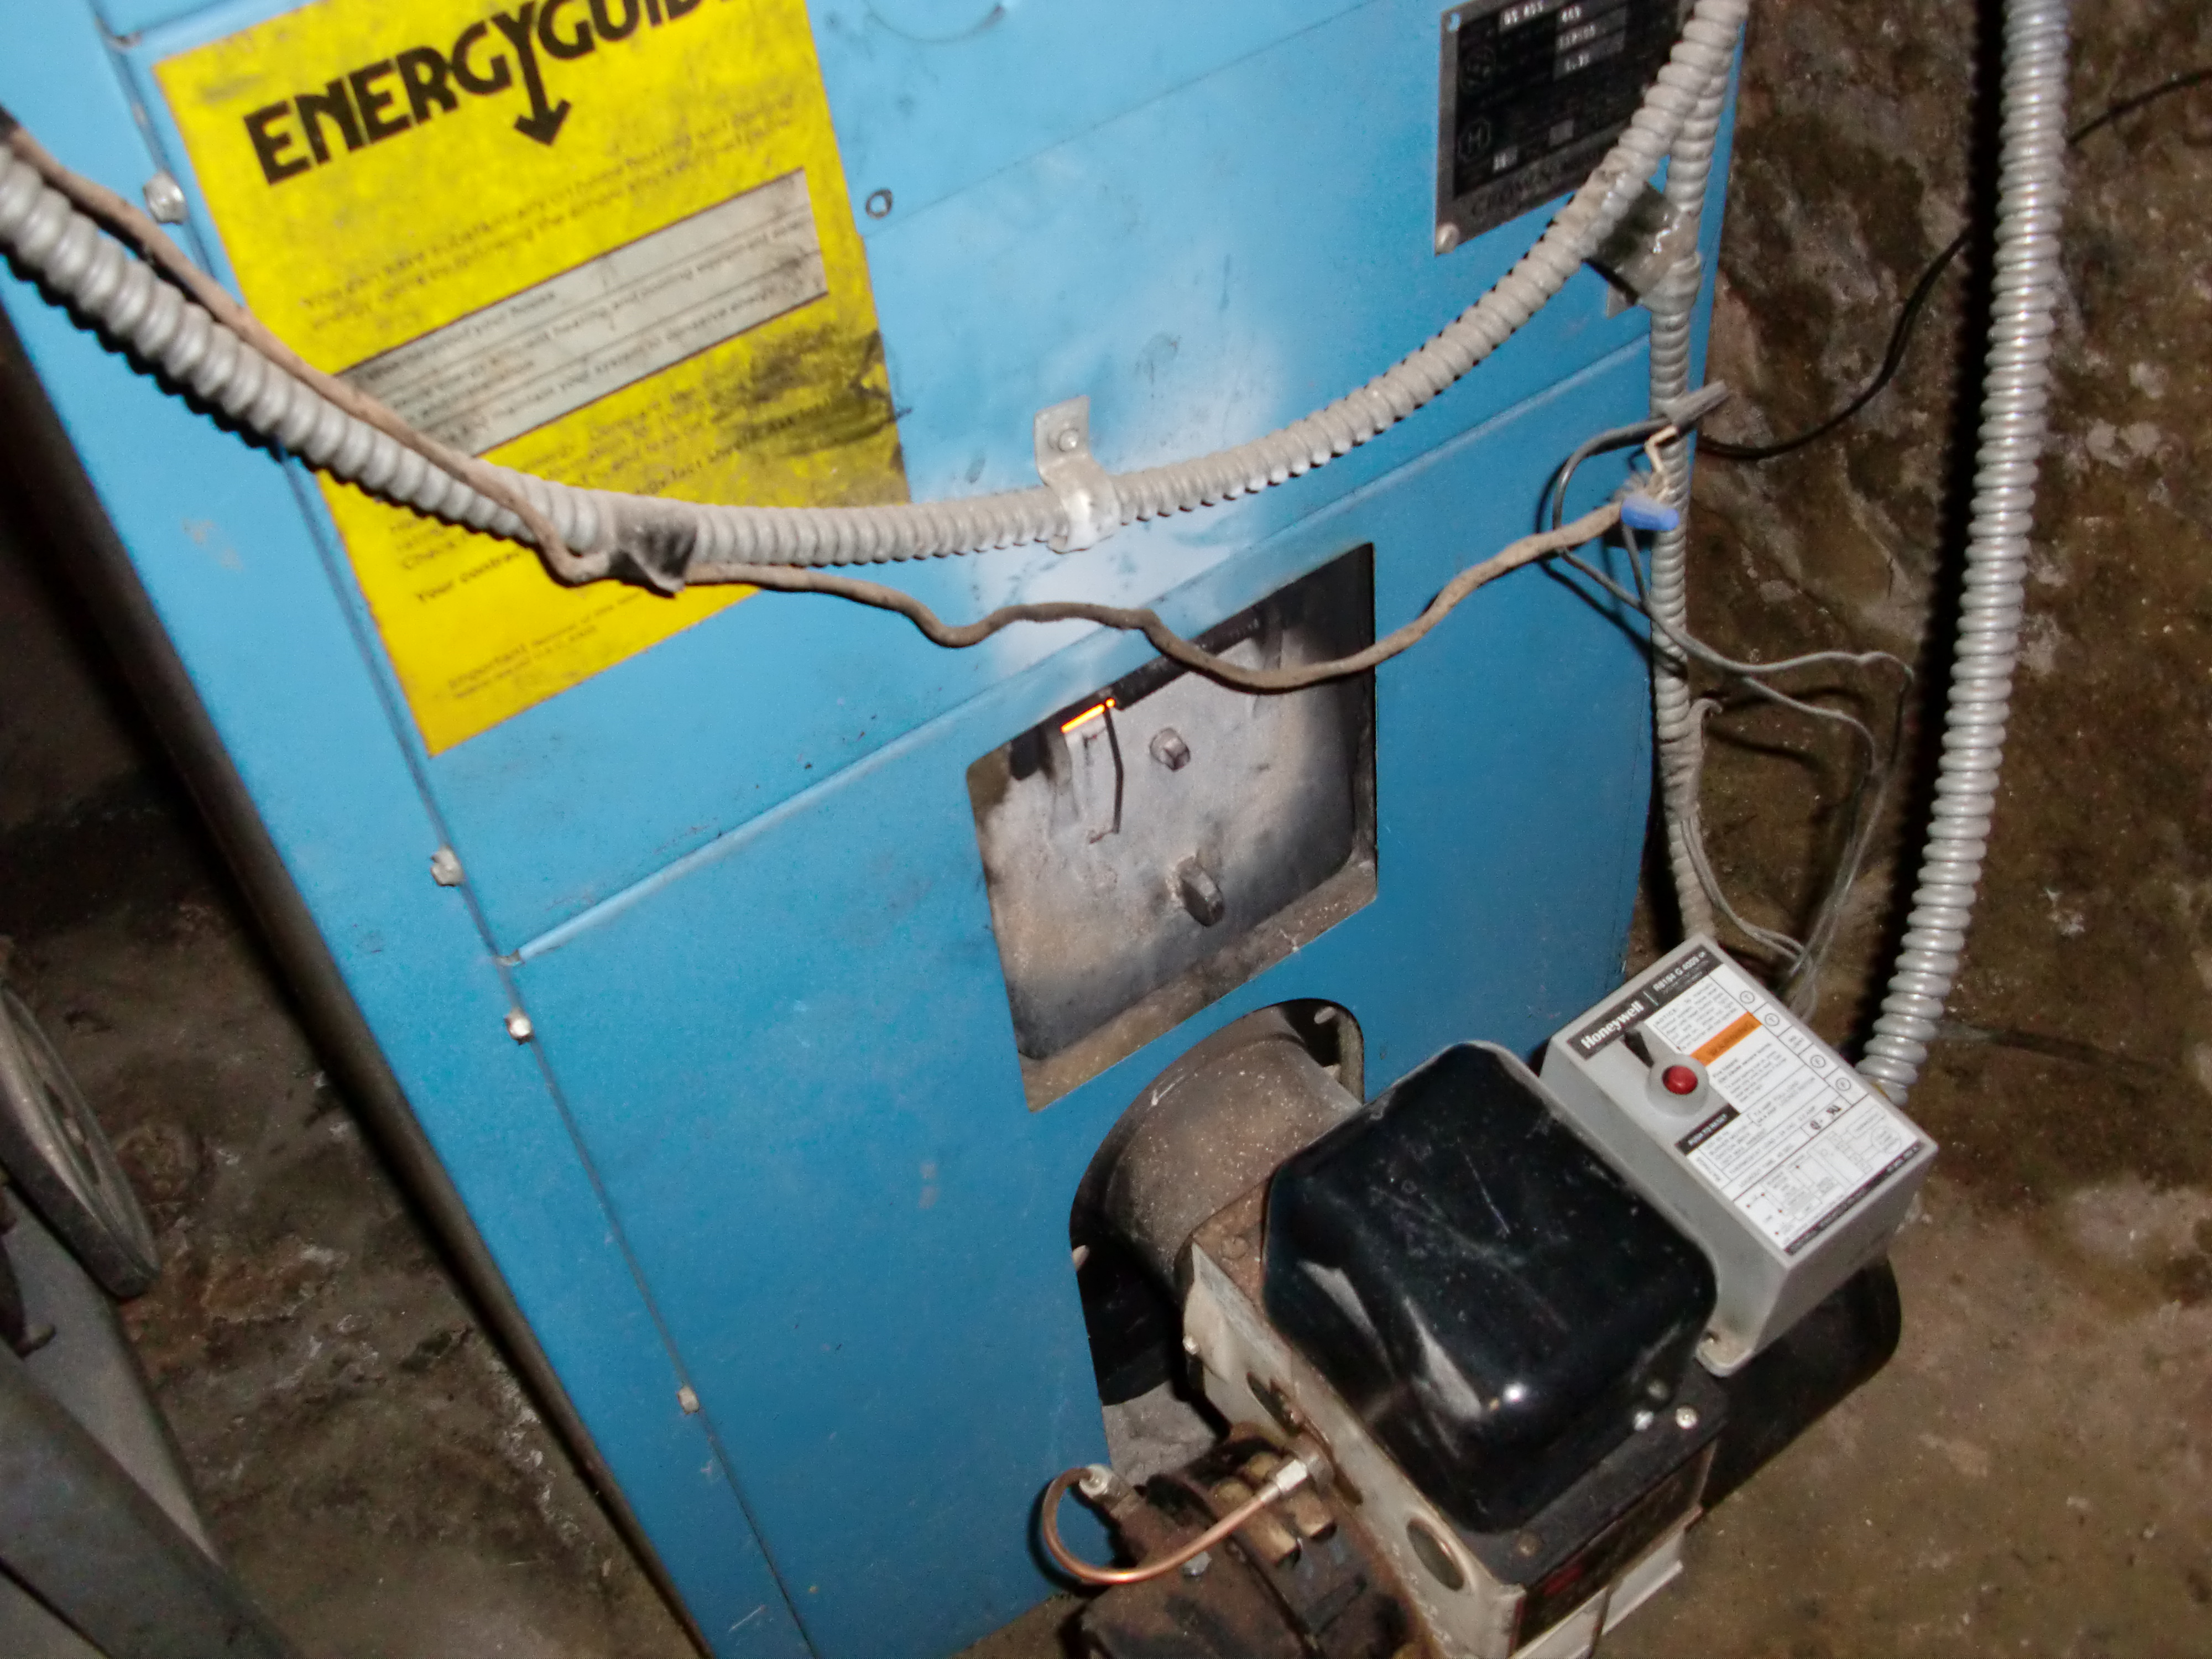 cracked refractory etc. — Heating Help: The Wall